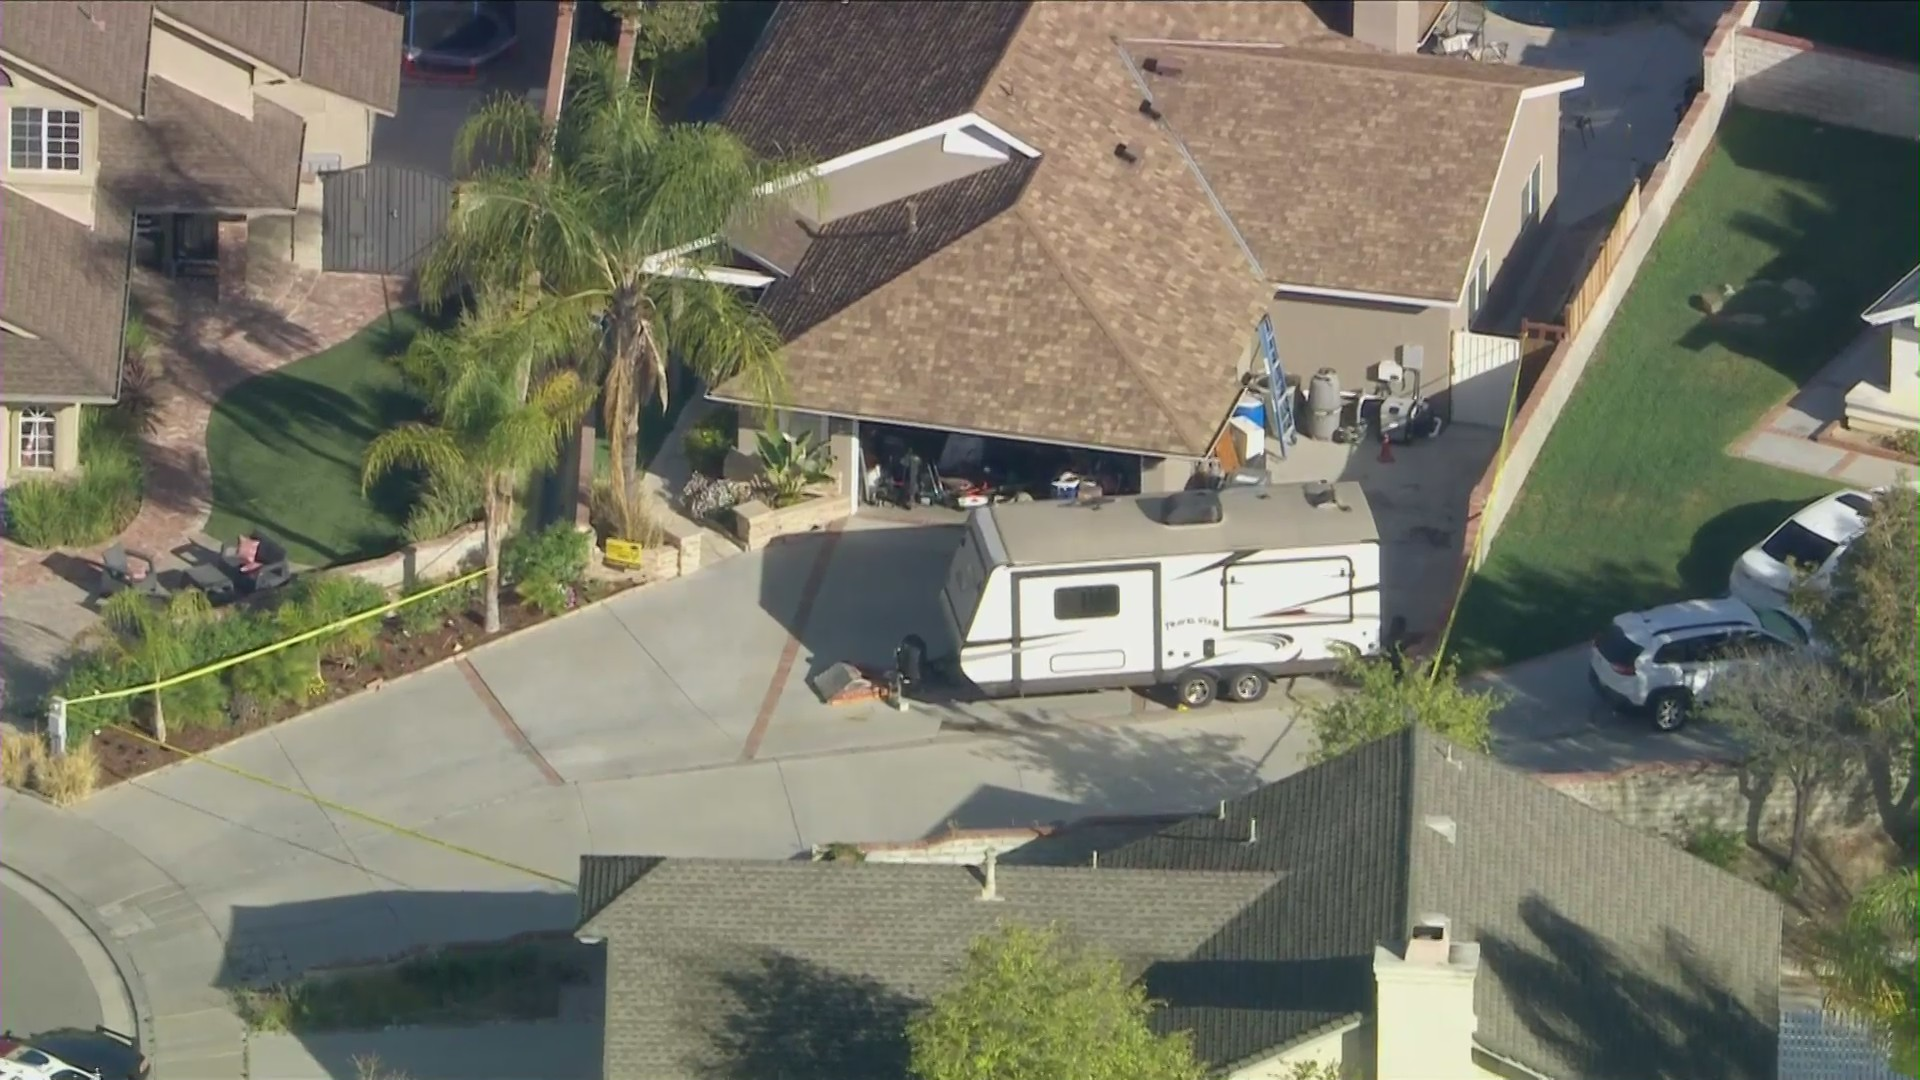 A woman was fatally stabbed at a home in Santa Clarita on April 15, 2021. (KTLA)